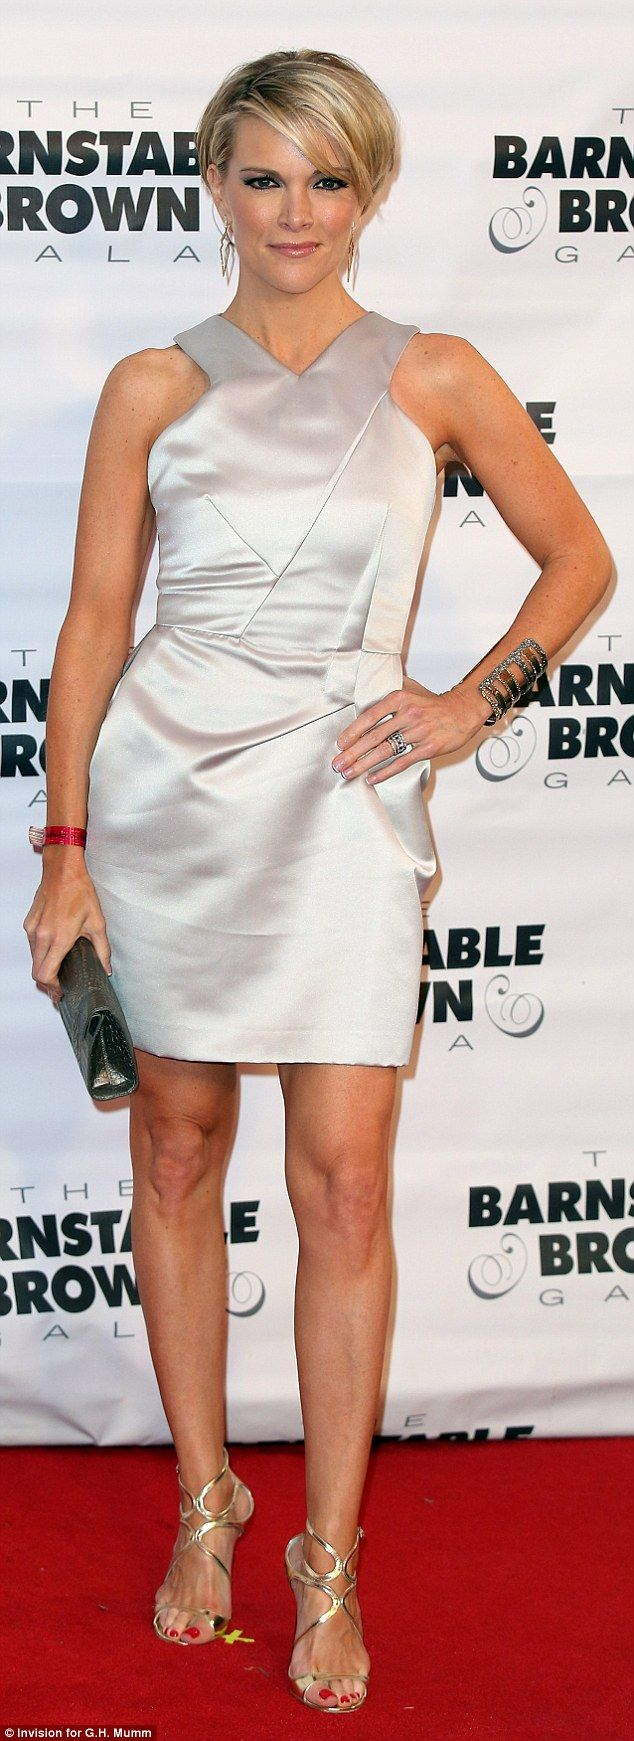 Kentucky Derby Hairstyles Megyn Kelly Sizzles At Derby Party In 1600 Dress And 900